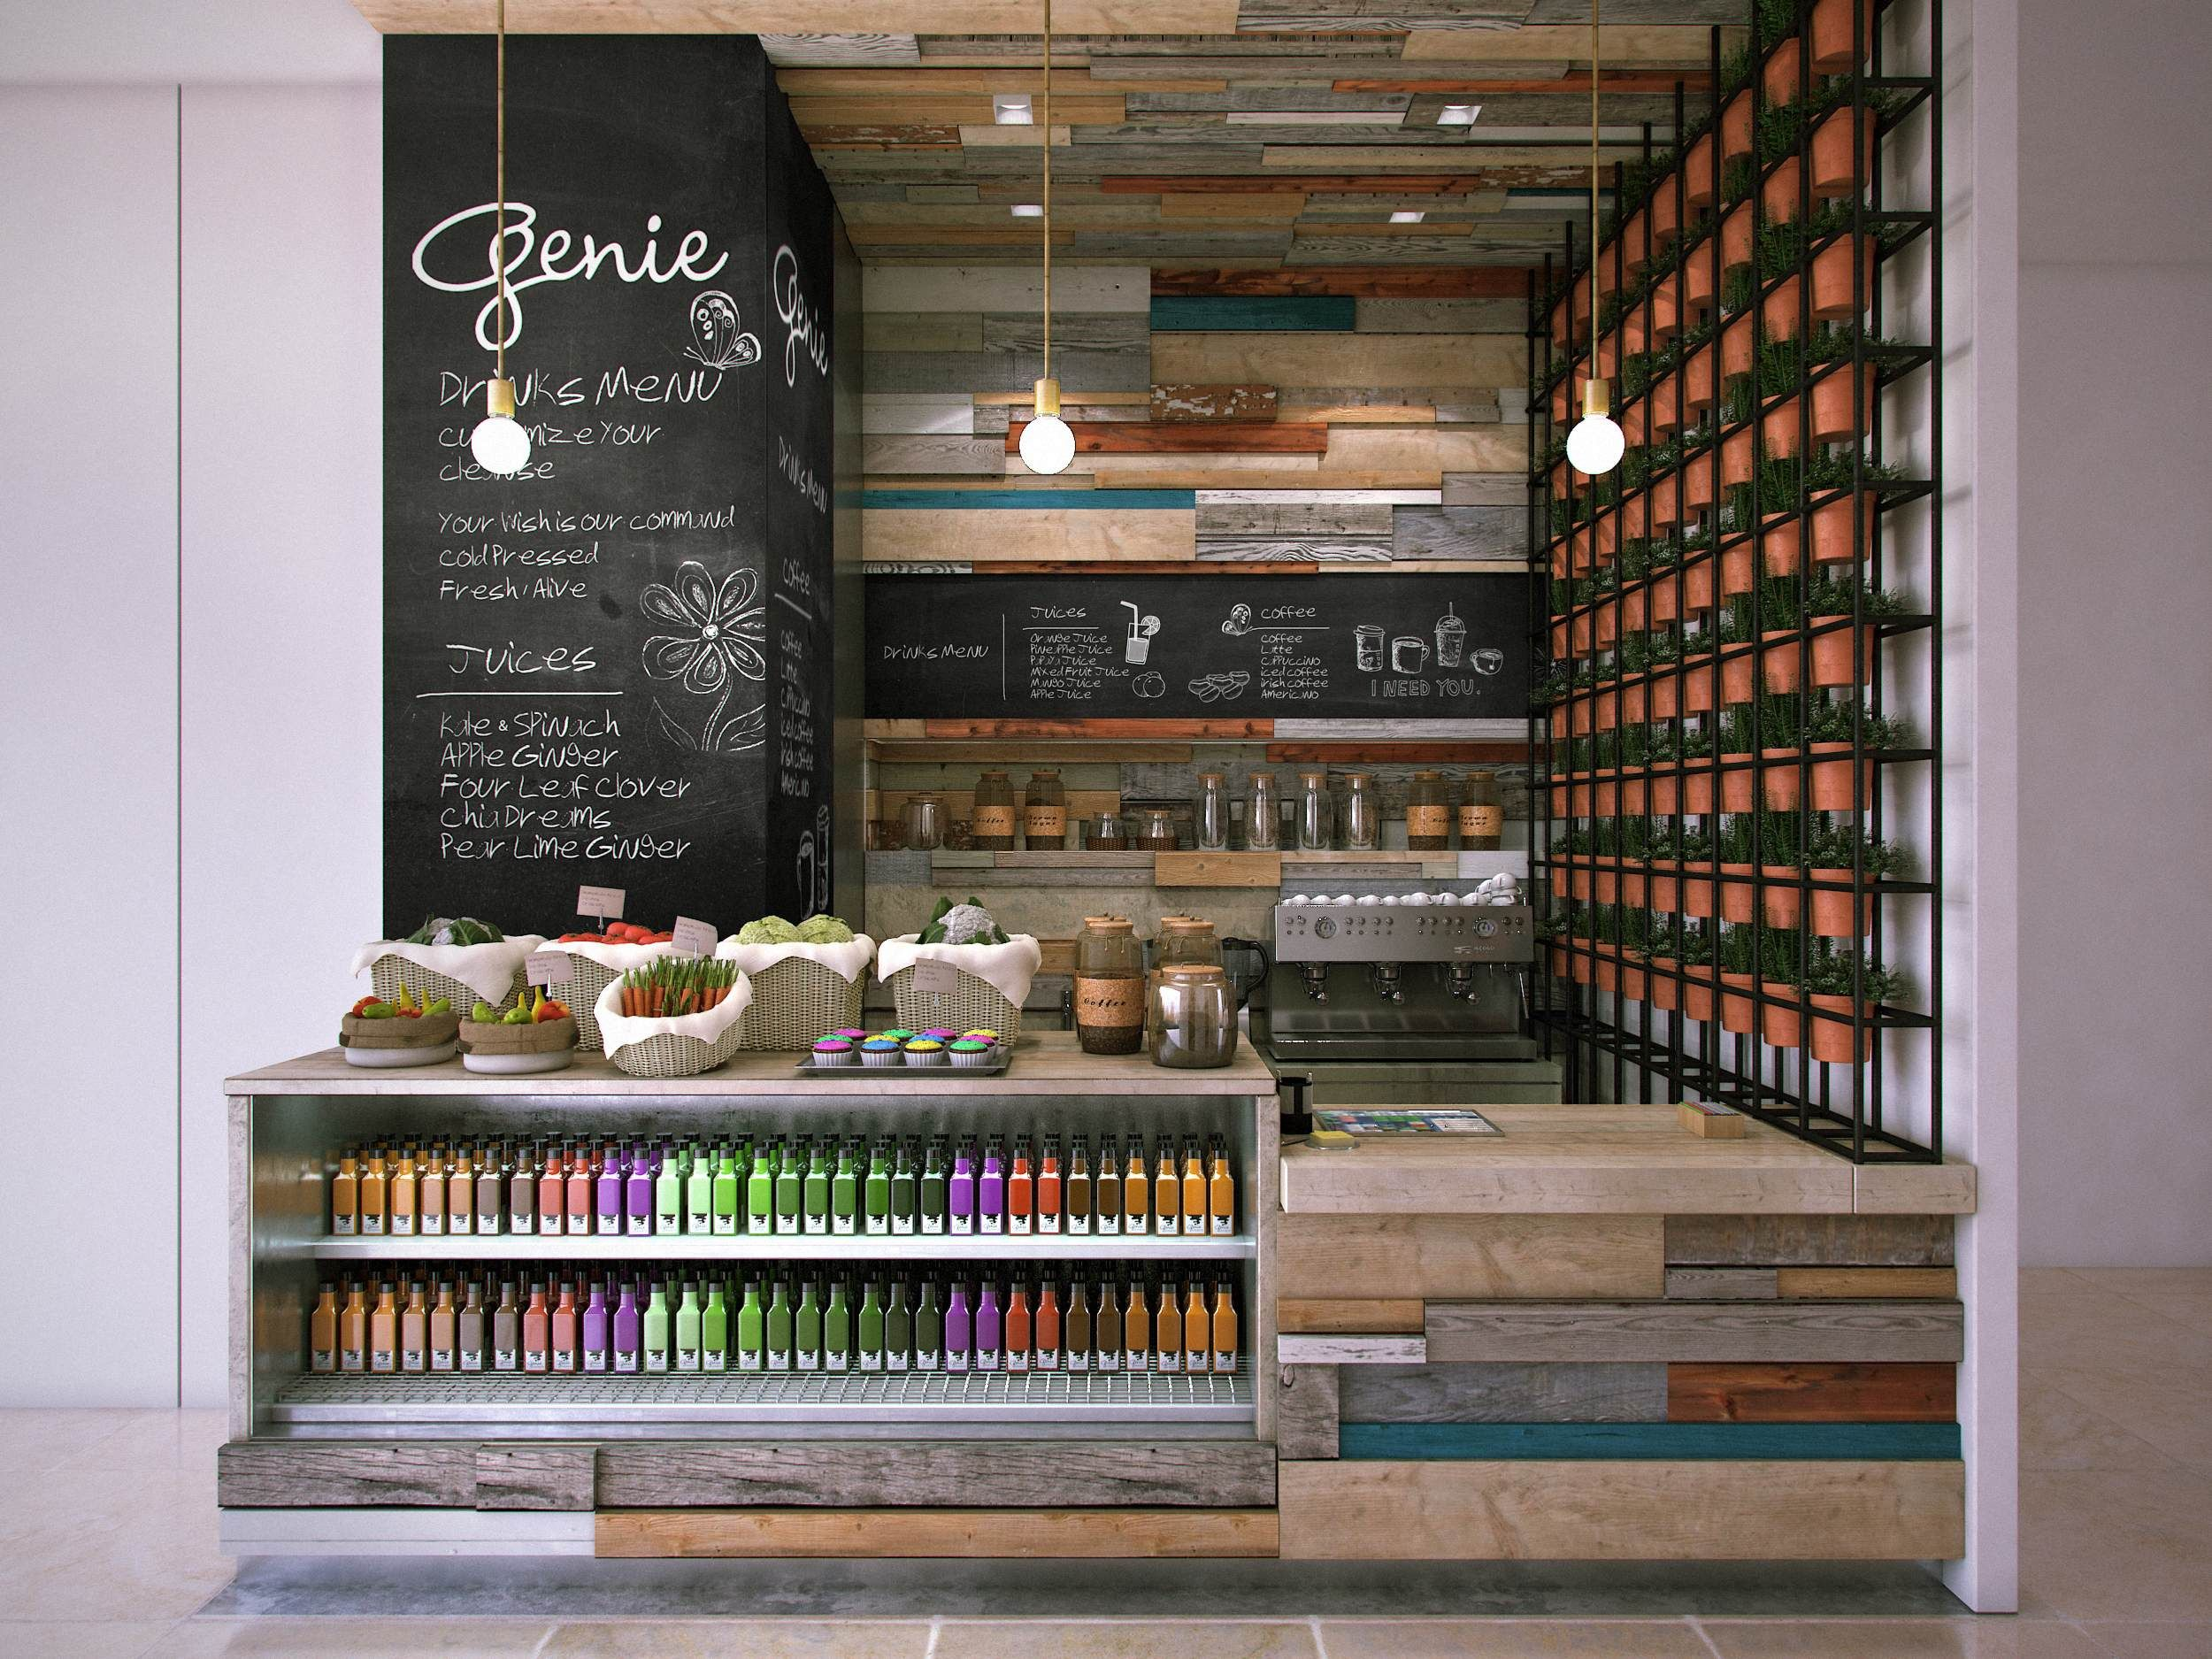 Genie juice bar mitchel squires associates architecture interior design